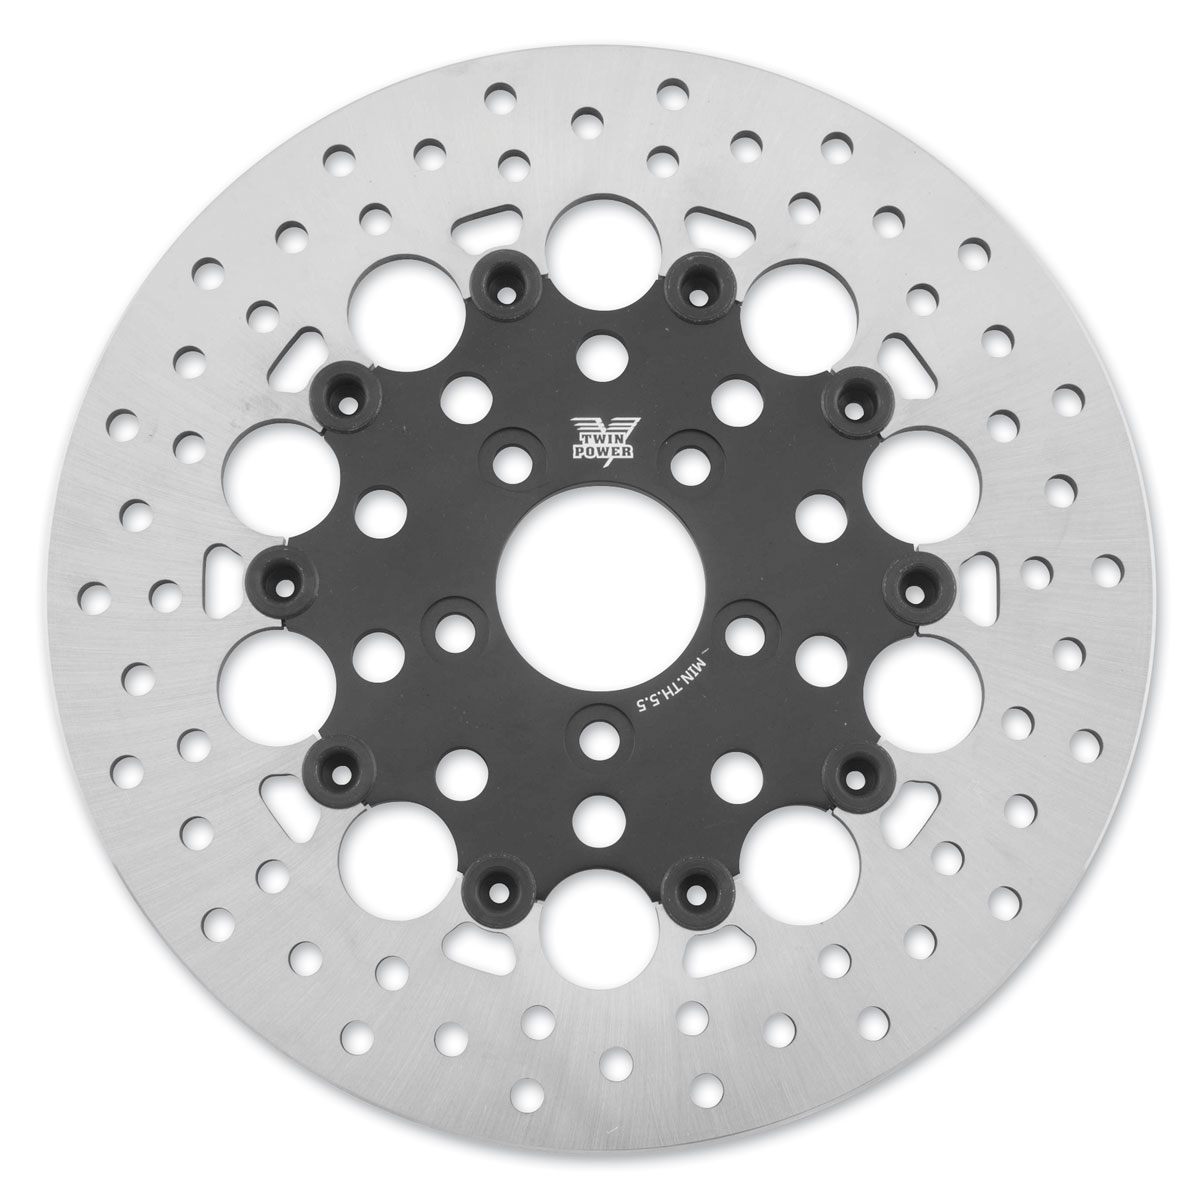 Twin Power Rear Black Floating Round Hole Brake Rotor